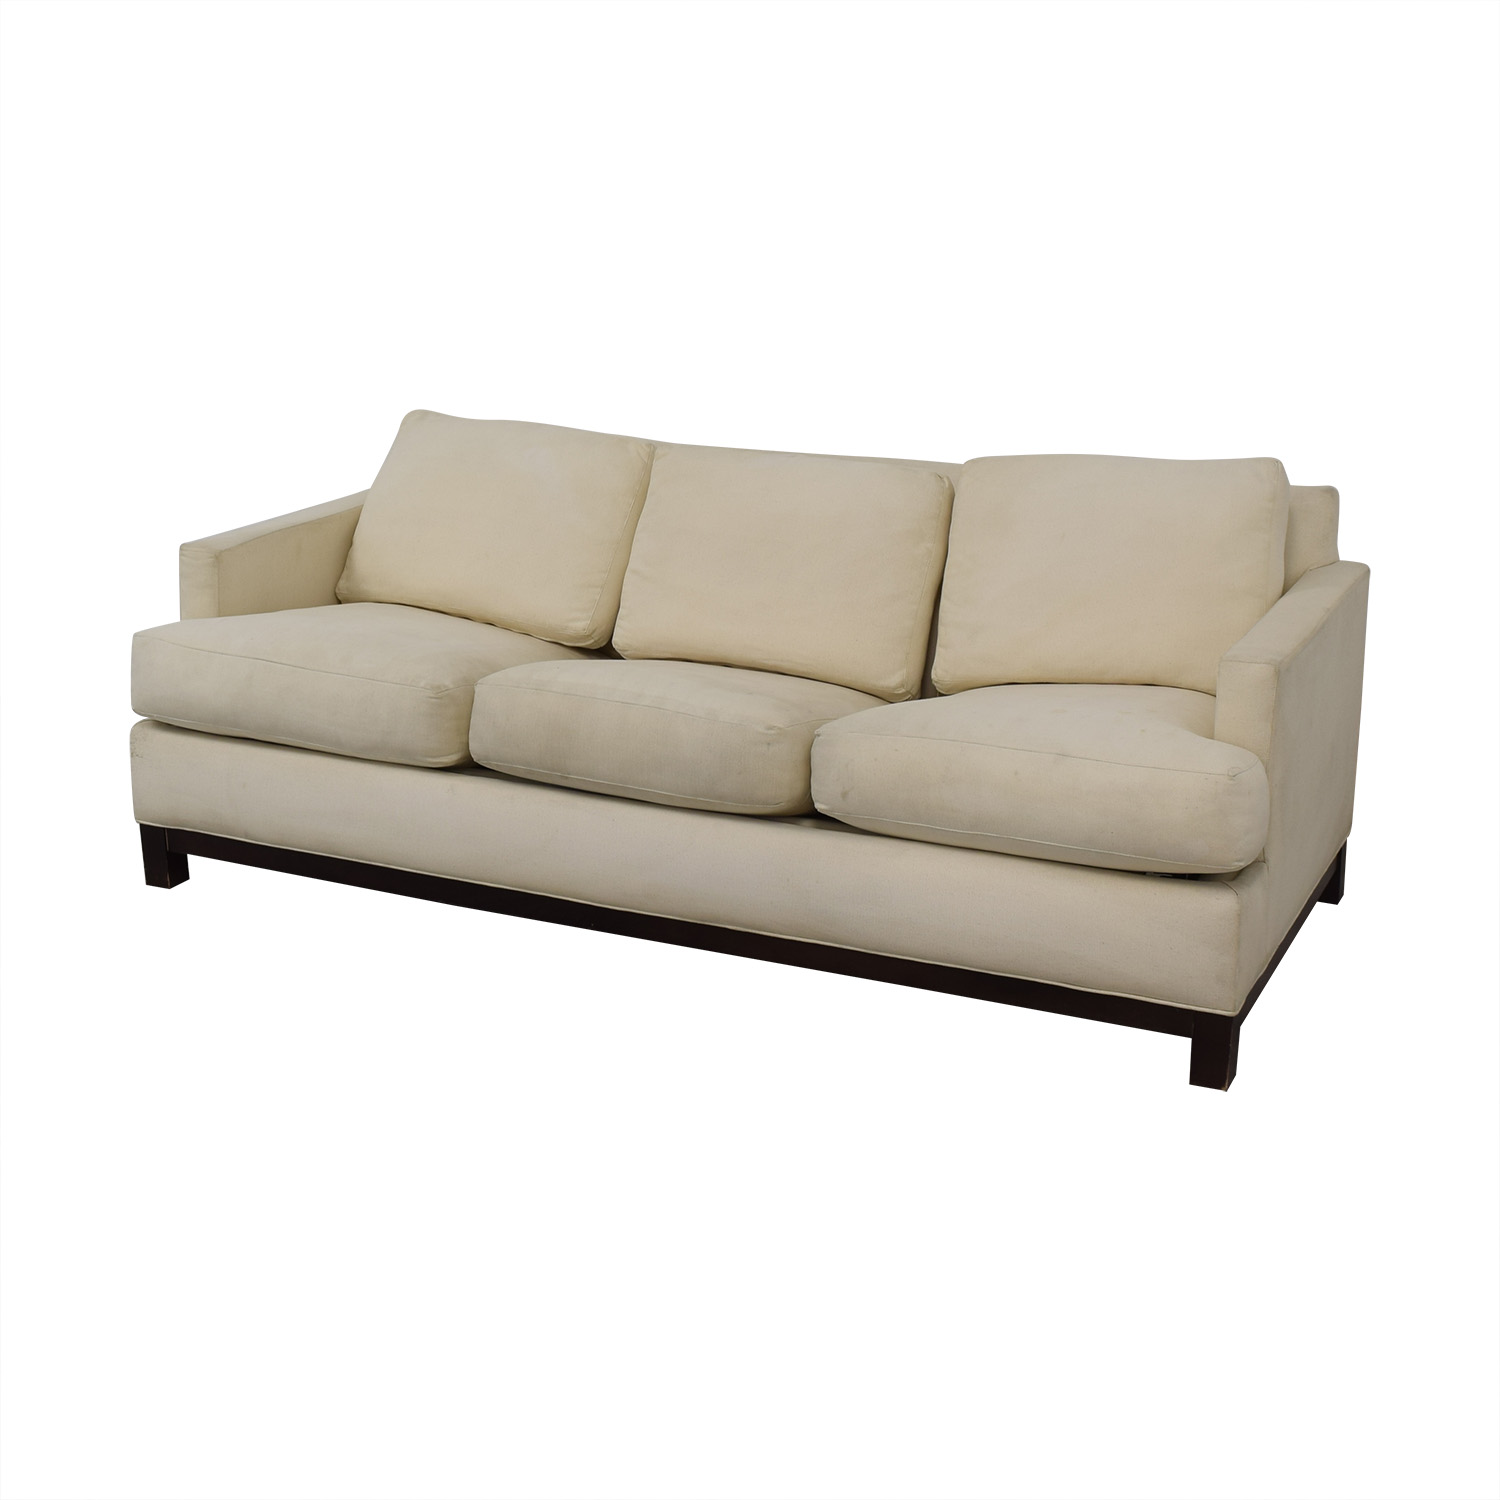 Rowe Furniture Queen Sleeper Sofa Rowe Furniture